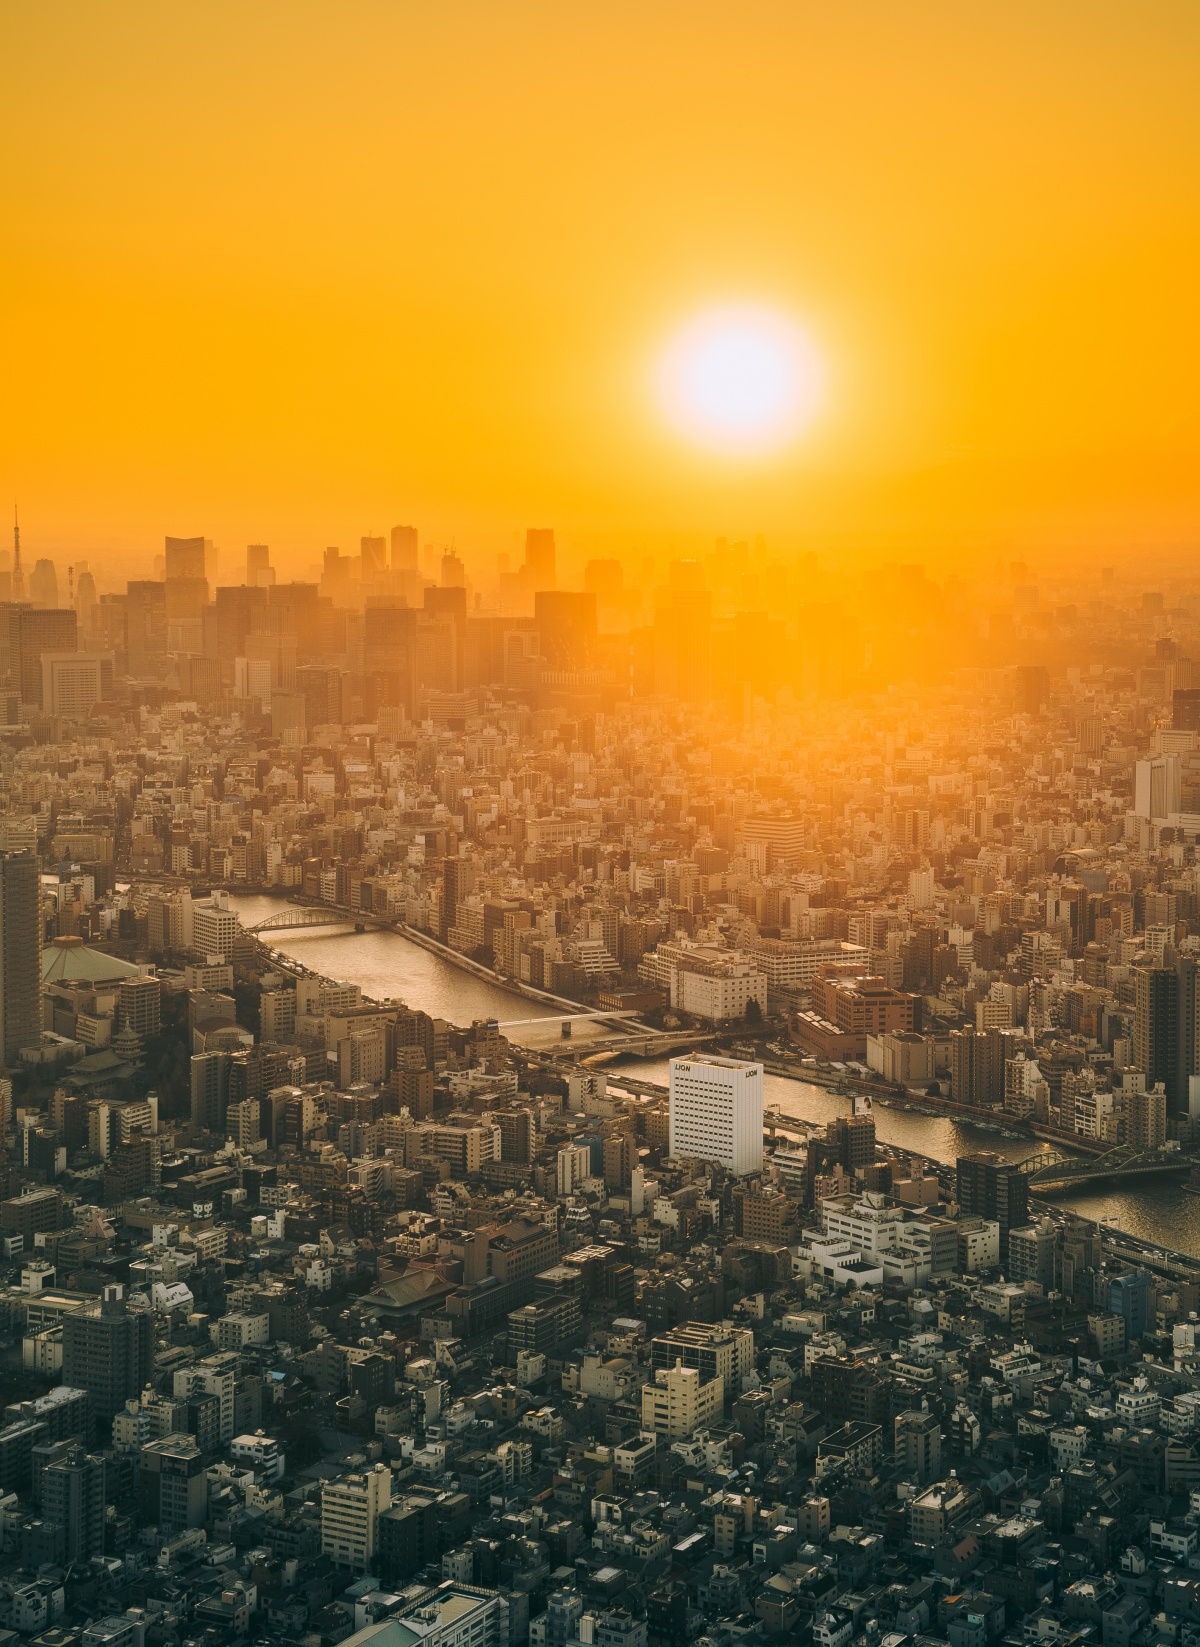 Picture of a beautiful sunset over Tokyo skyline from Tokyo Skytree